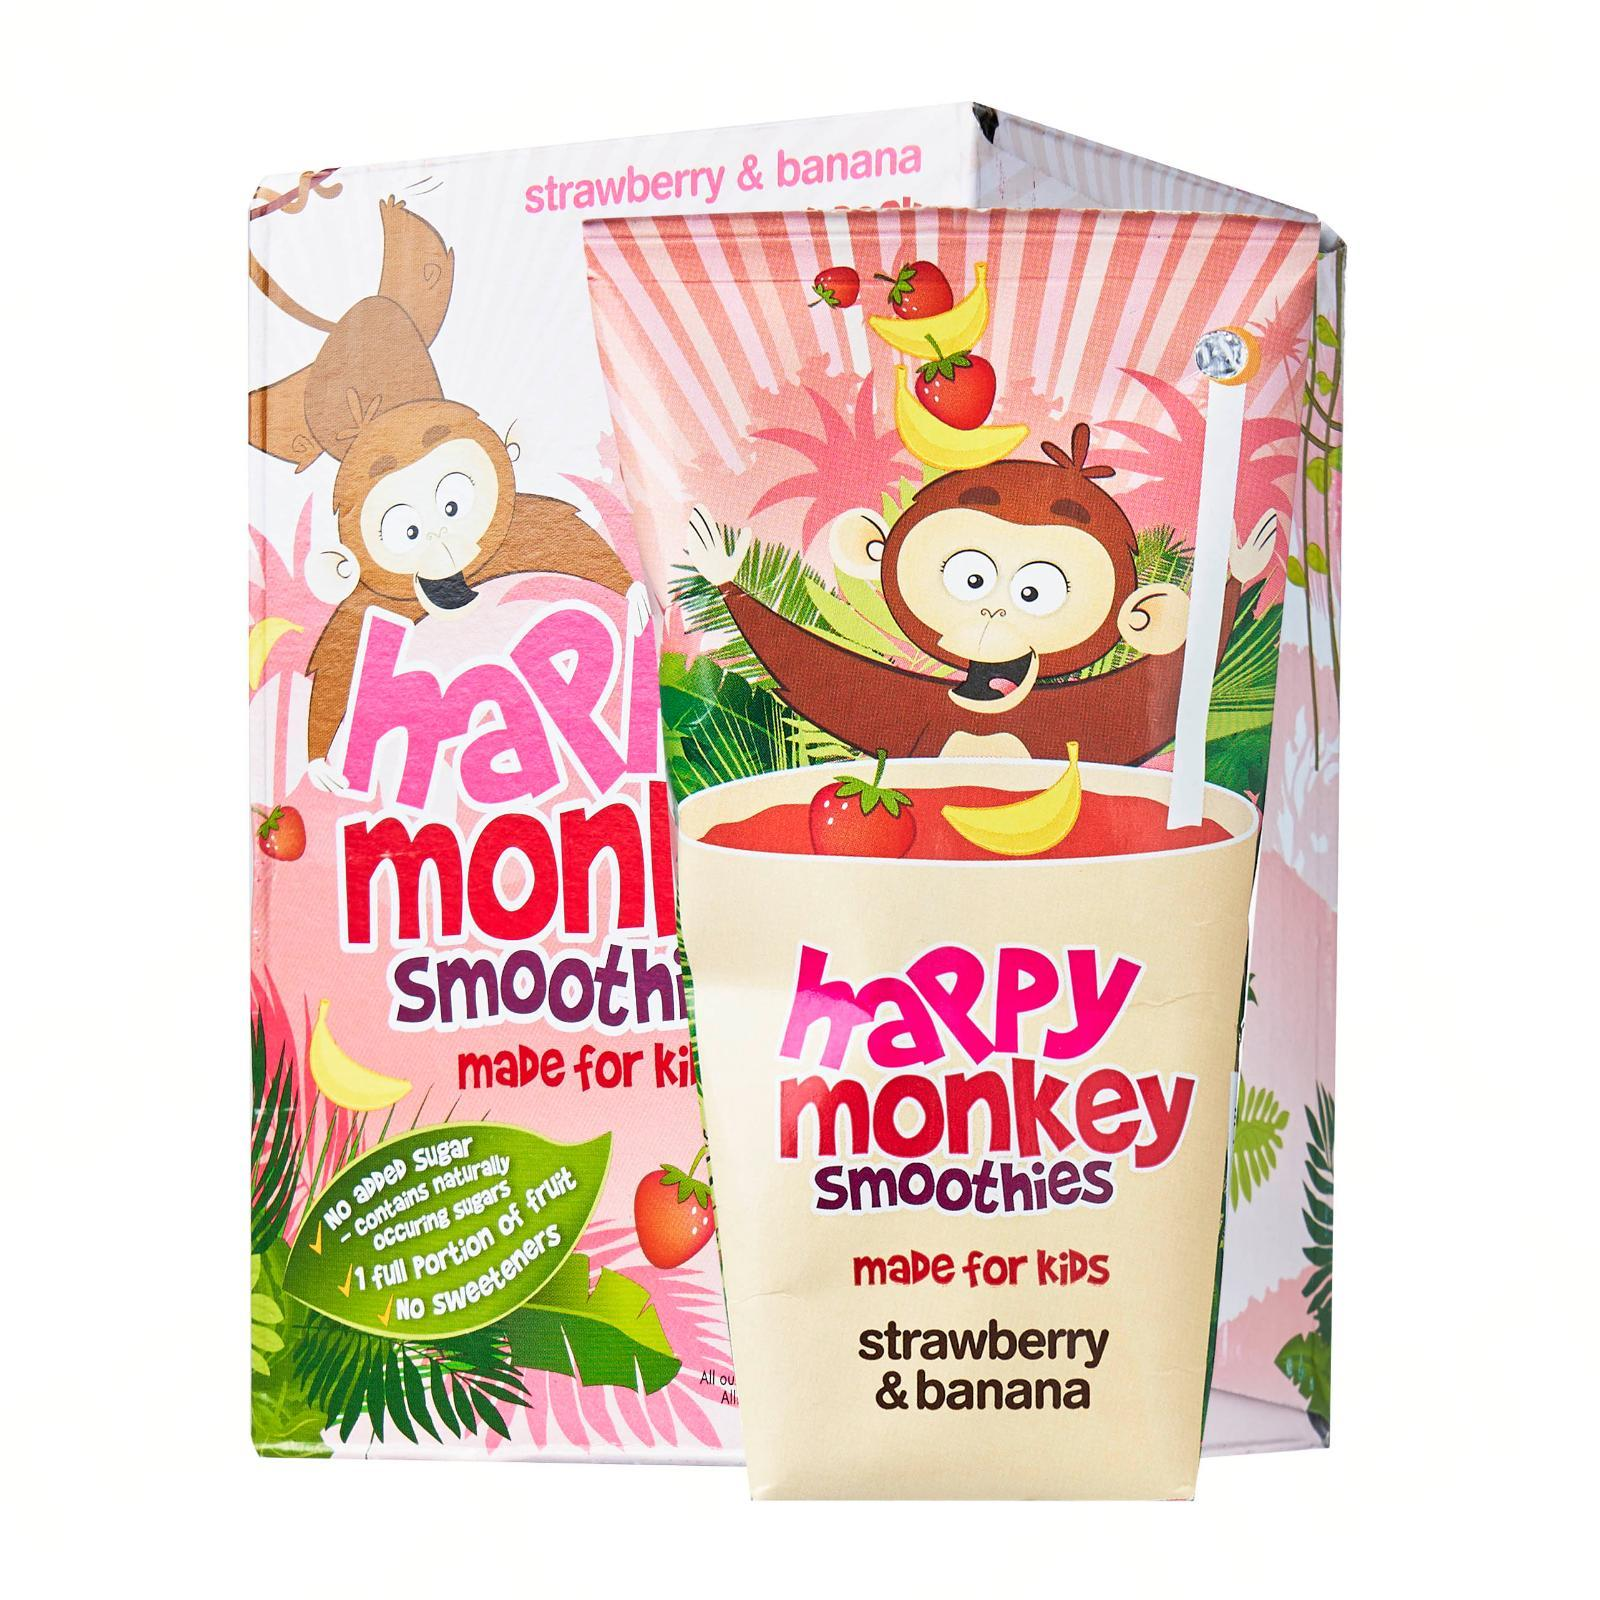 HAPPY MONKEY 100-Percent Fruit Smoothies - Made for Kids - Strawberry Banana x4